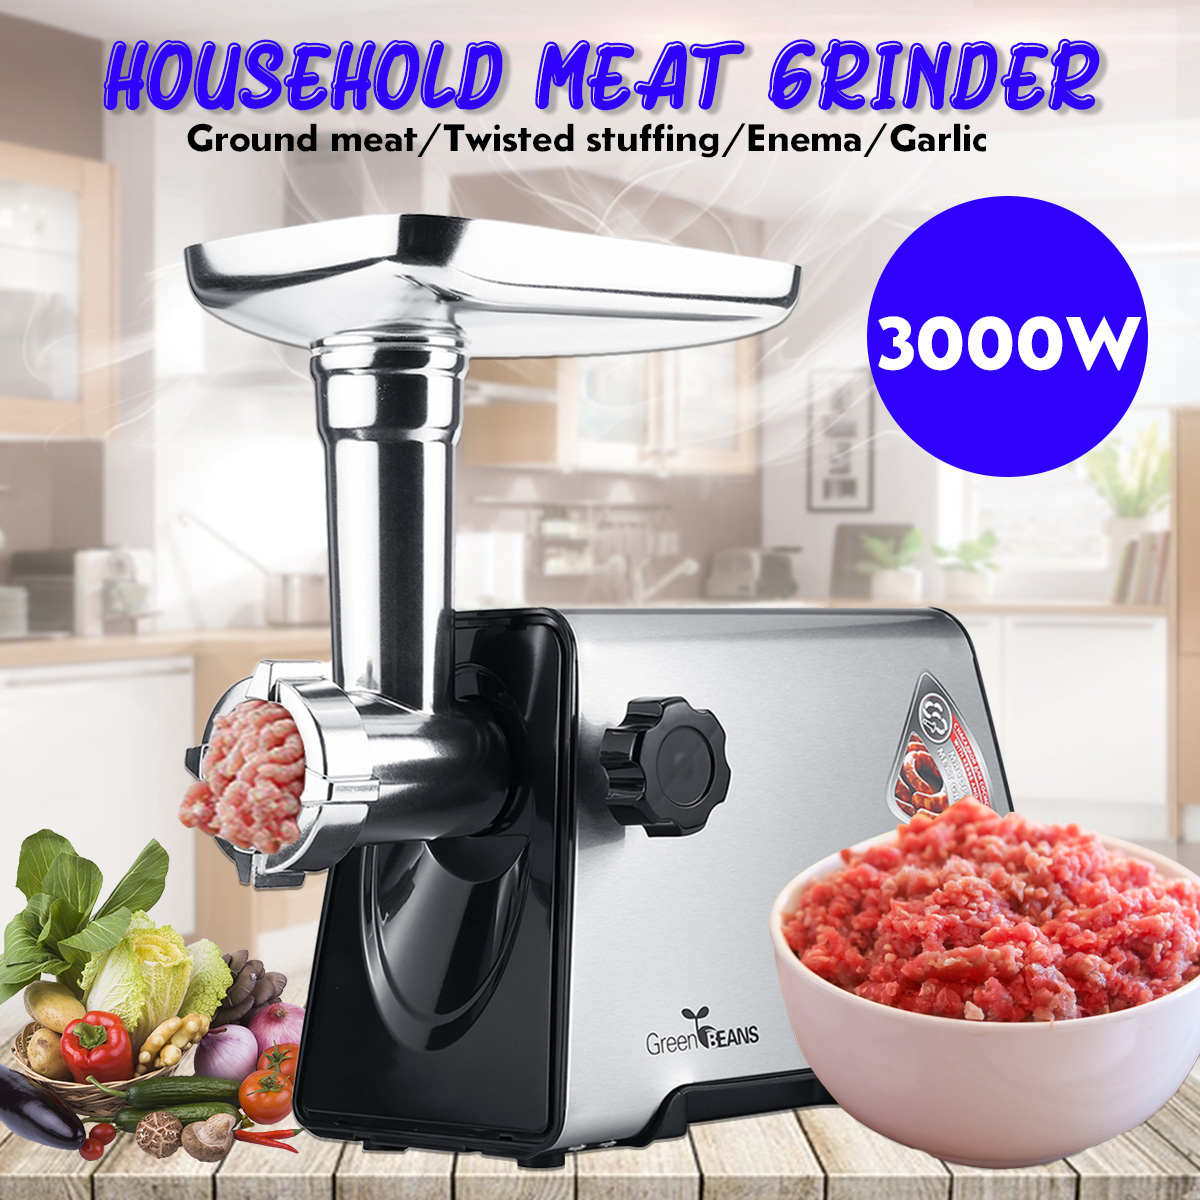 300r/min 220V 3000W Commercial Stainless Steel Meat Grinder 3 Knifes 3 Tubes Butcher Easy To Clean Durable Kitchen Appliances